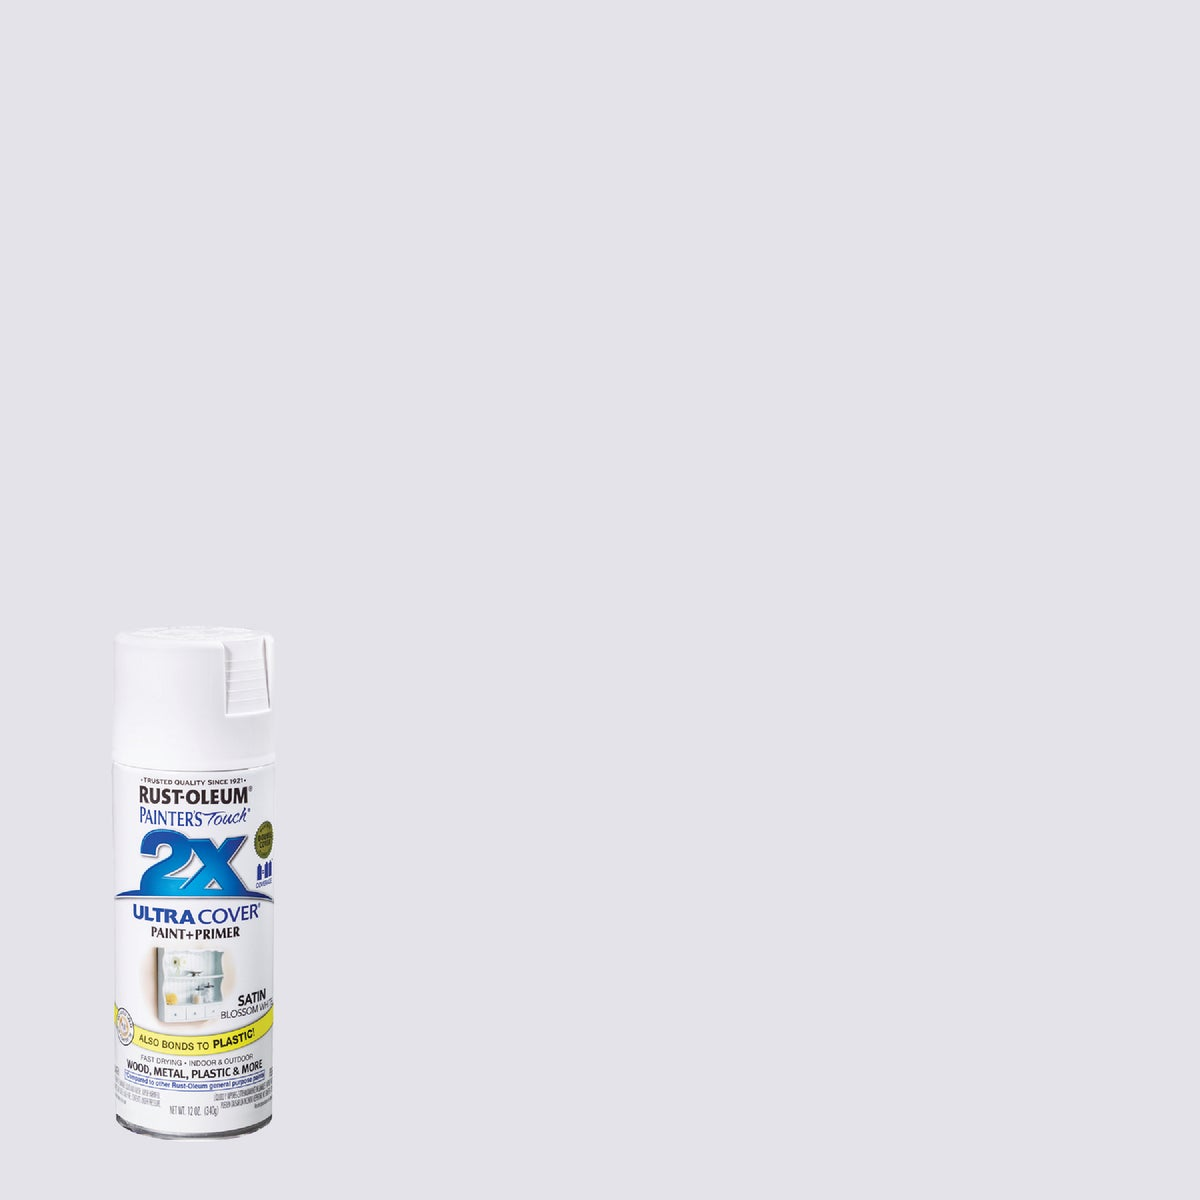 SAT BLSM WHT SPRAY PAINT - 249843 by Rustoleum